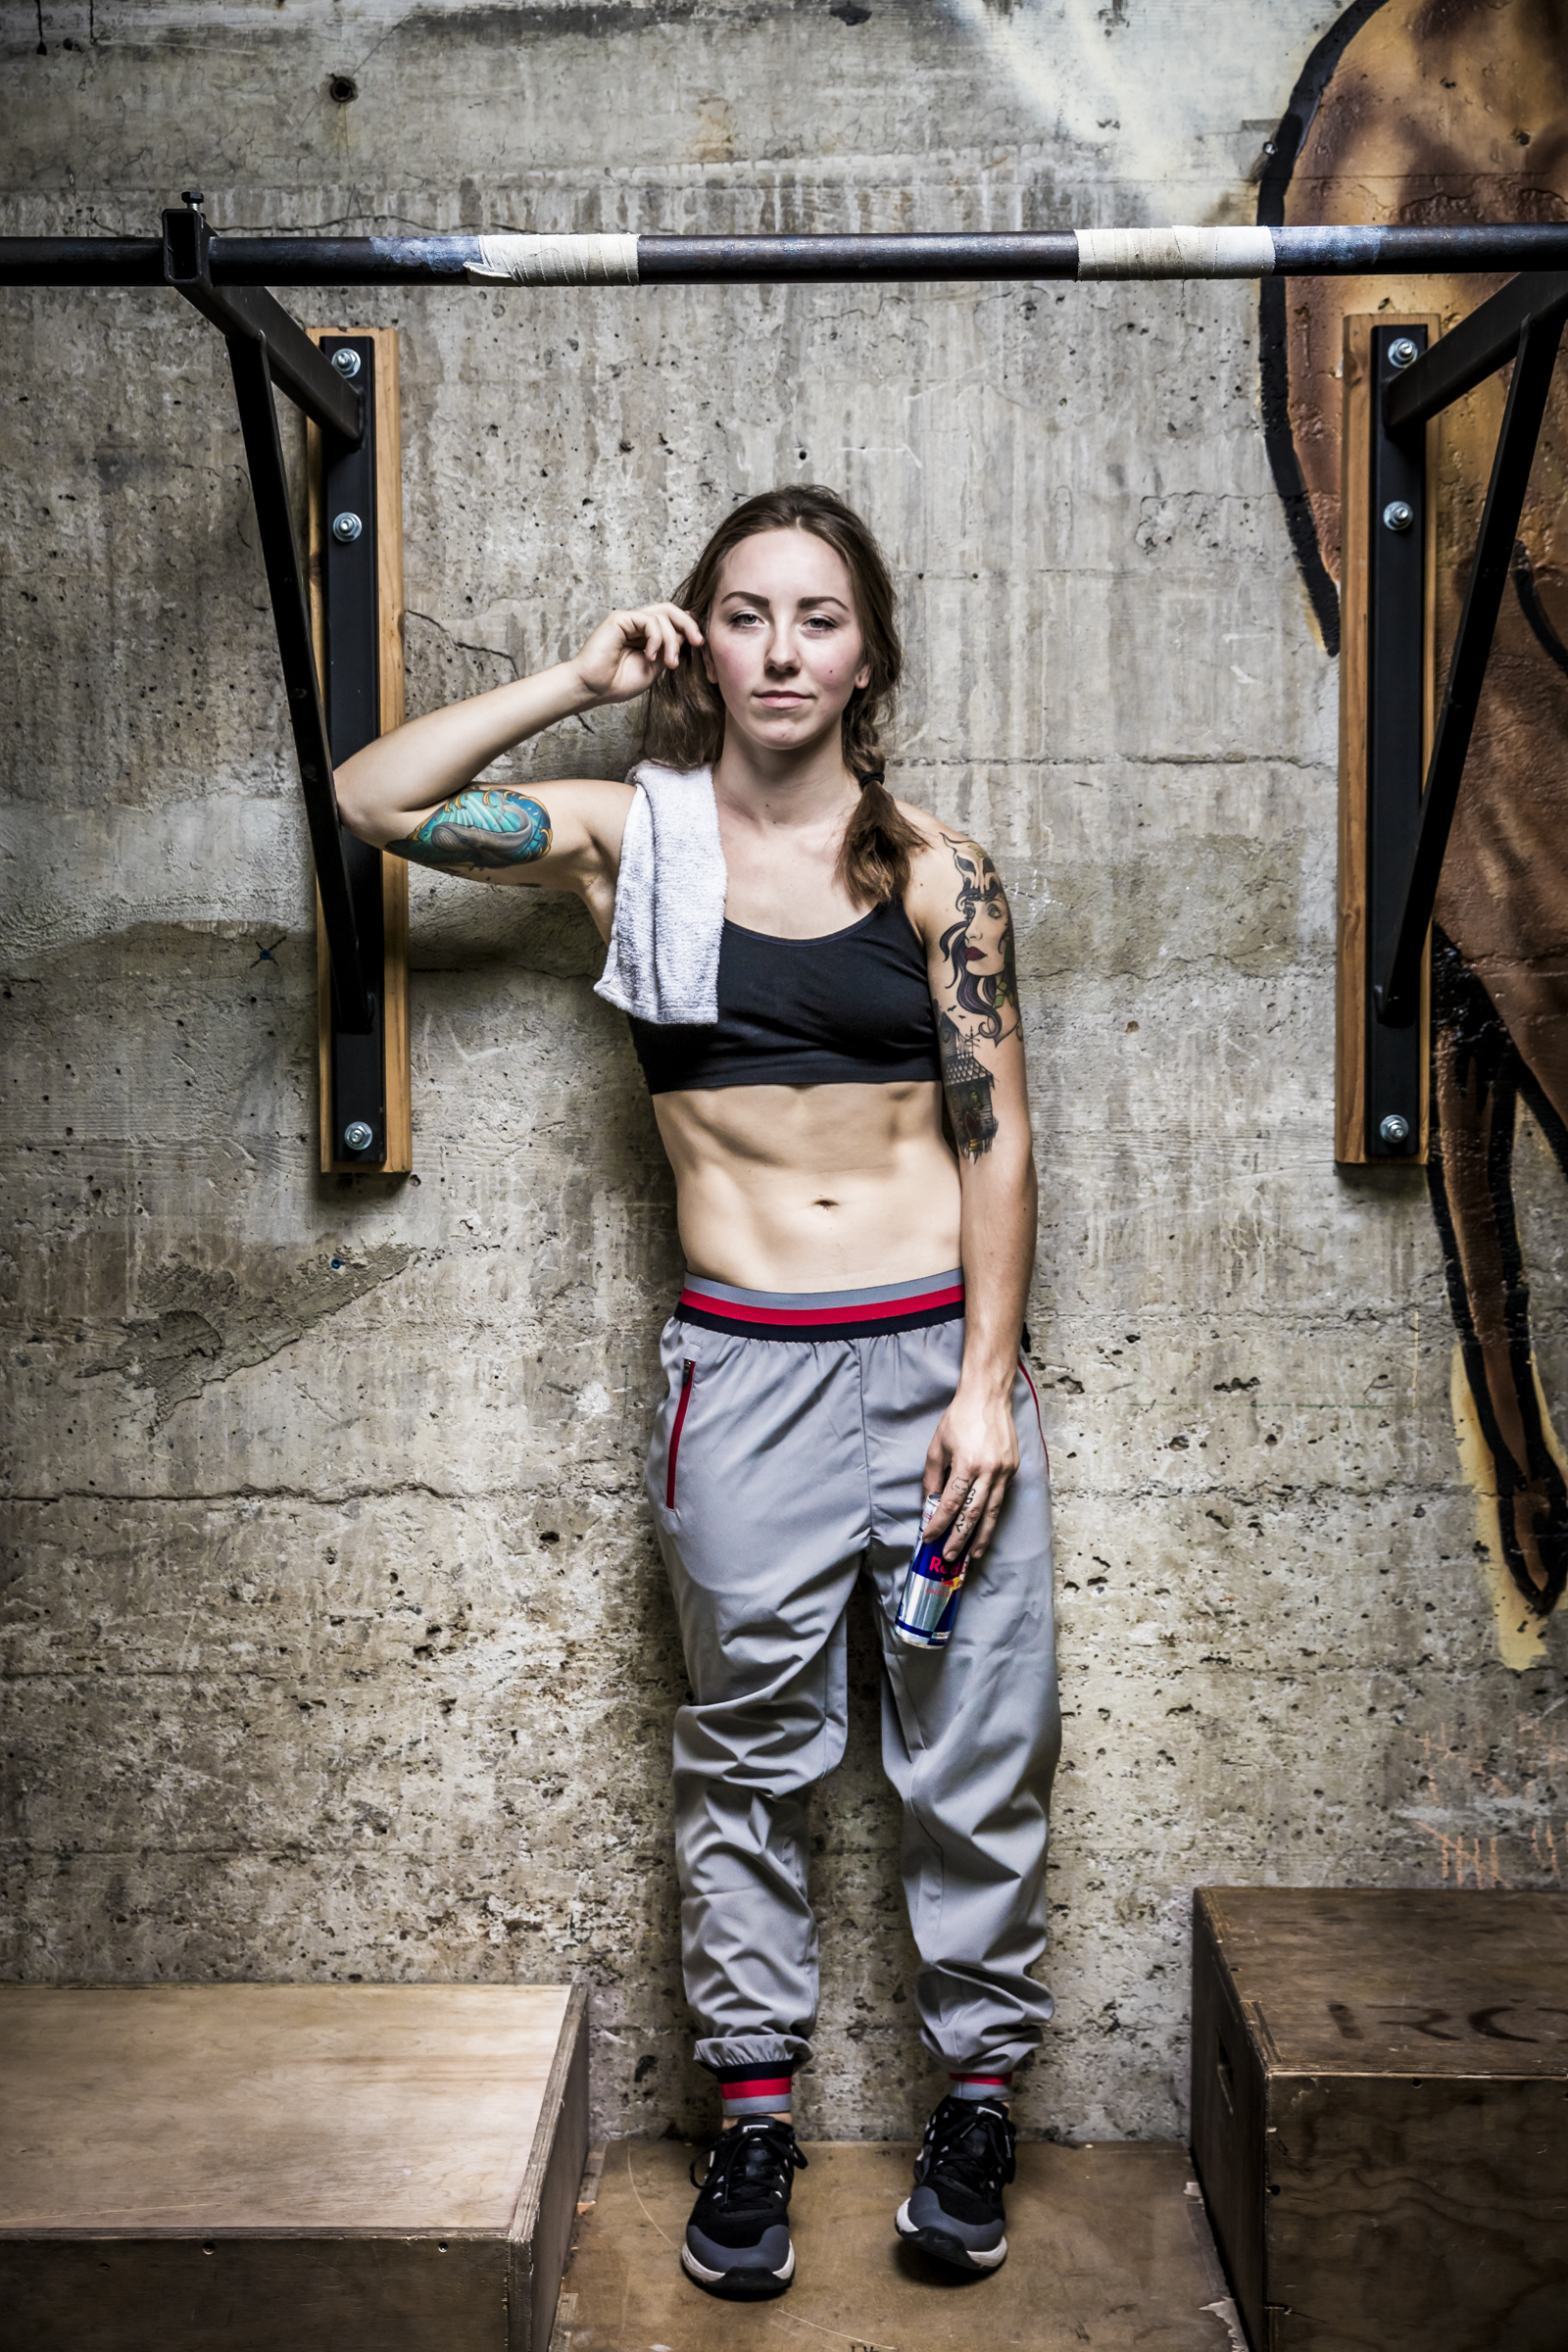 Loren Mutch RedBull athlete portrait. Portland, OR